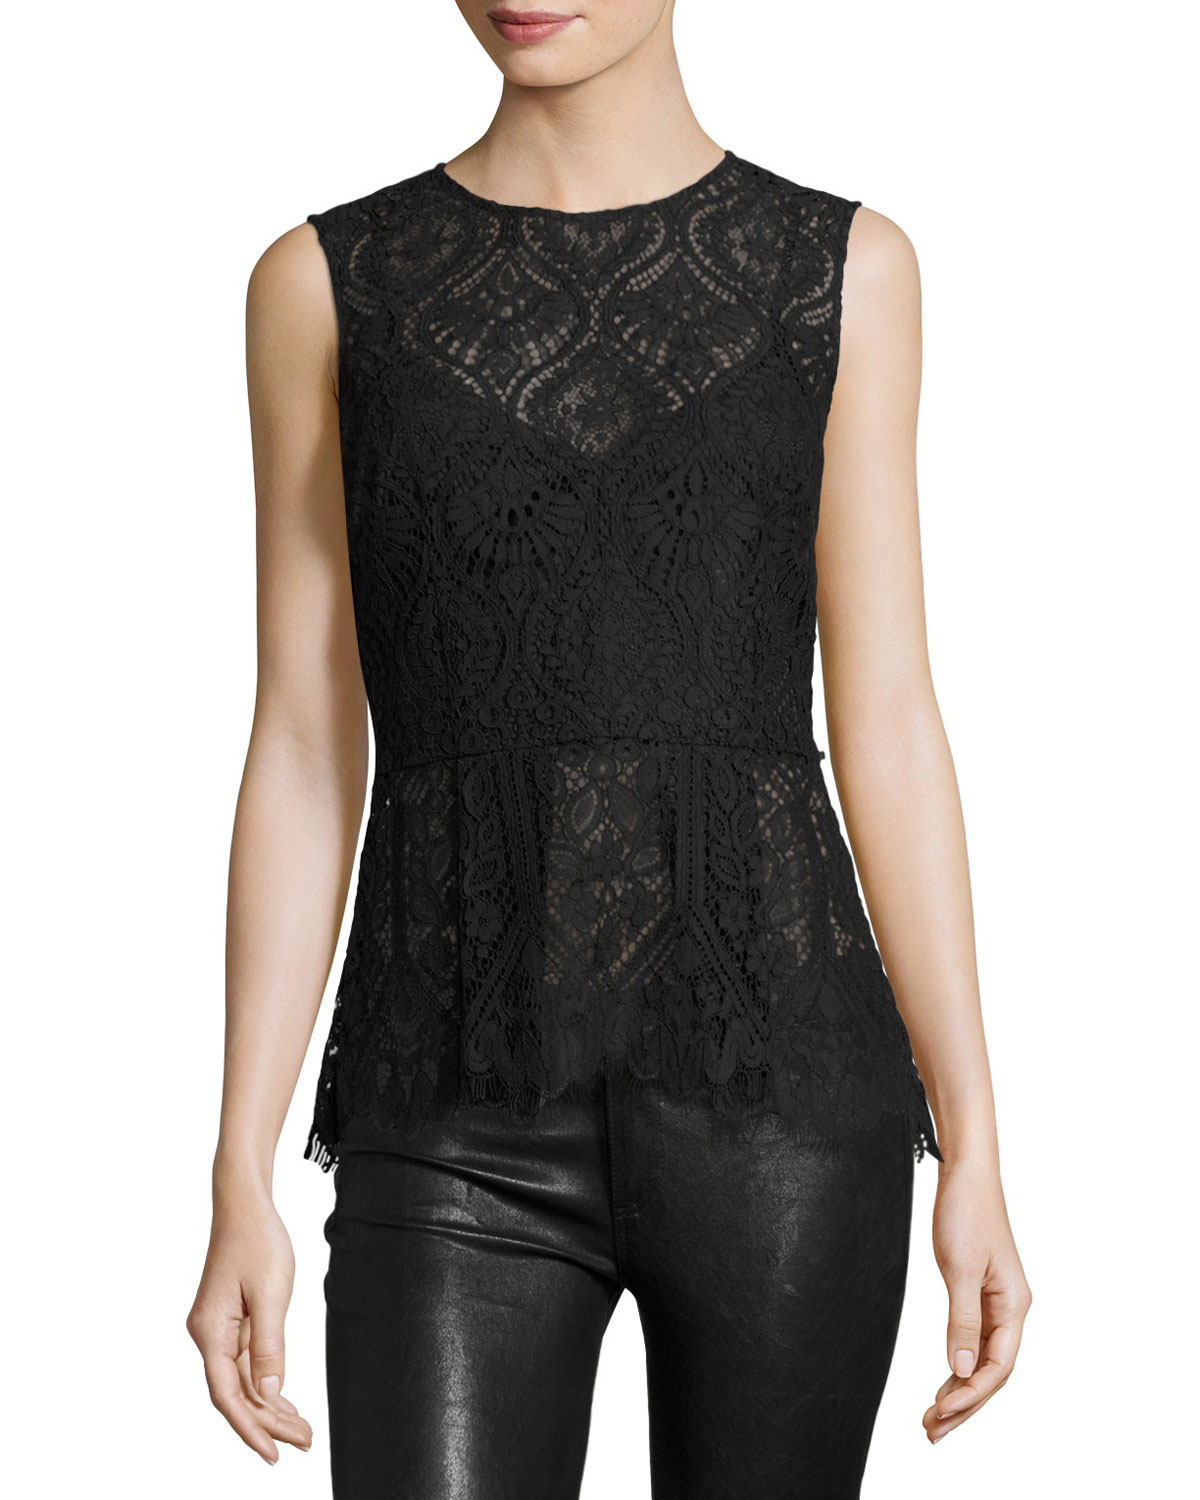 Lace Date Night Top, Black